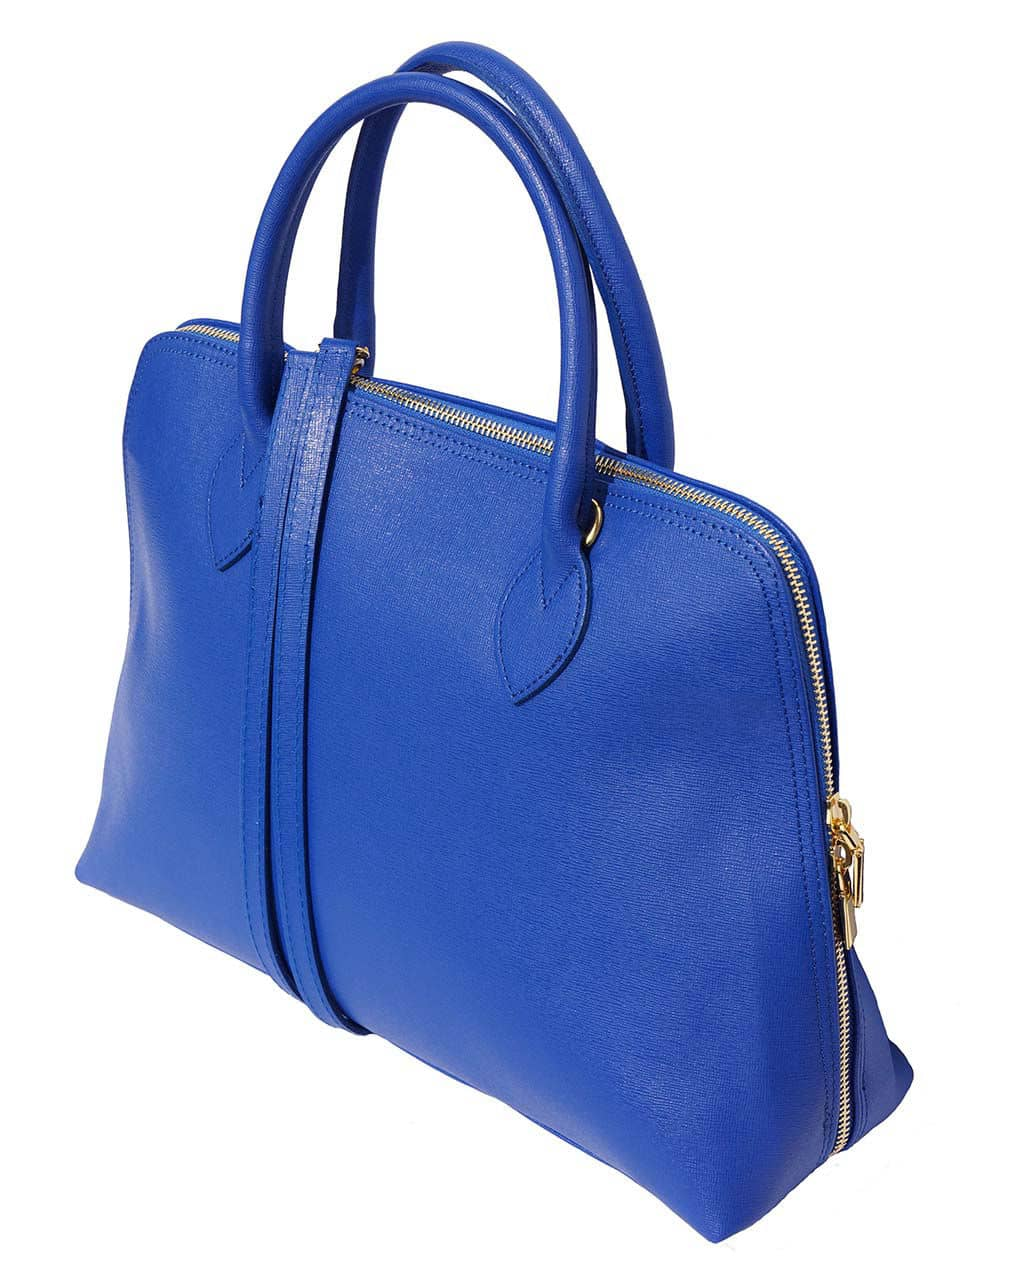 Private label of Italian handbags, made in Italy bags